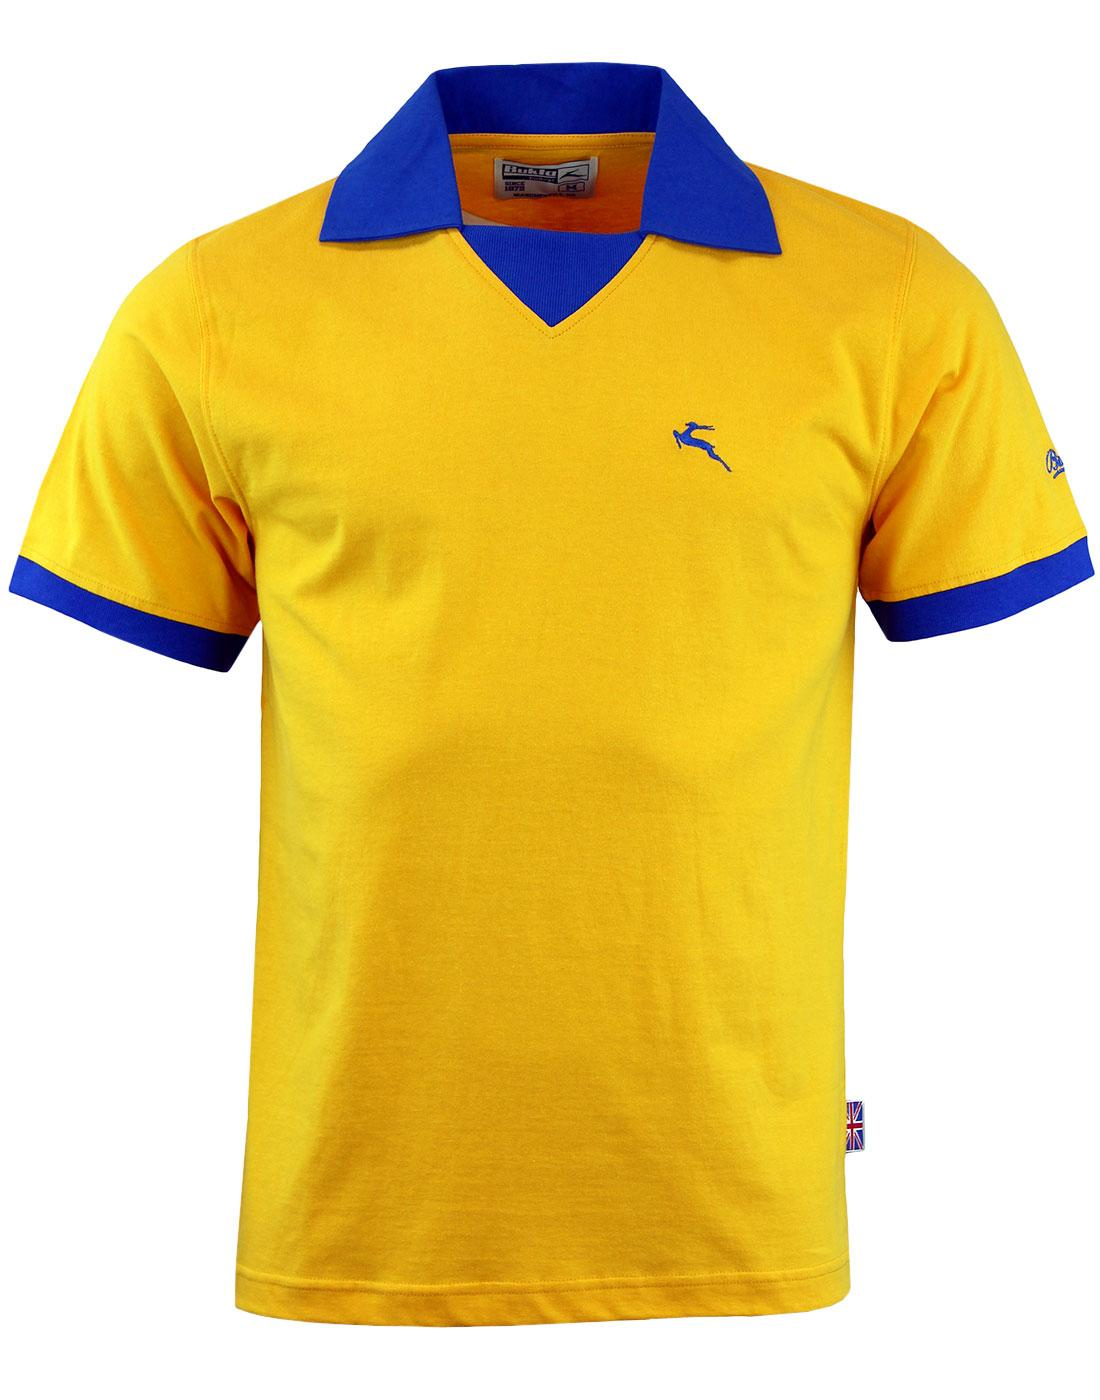 'Portland' -Bukta Vintage Retro Football Shirt (A)